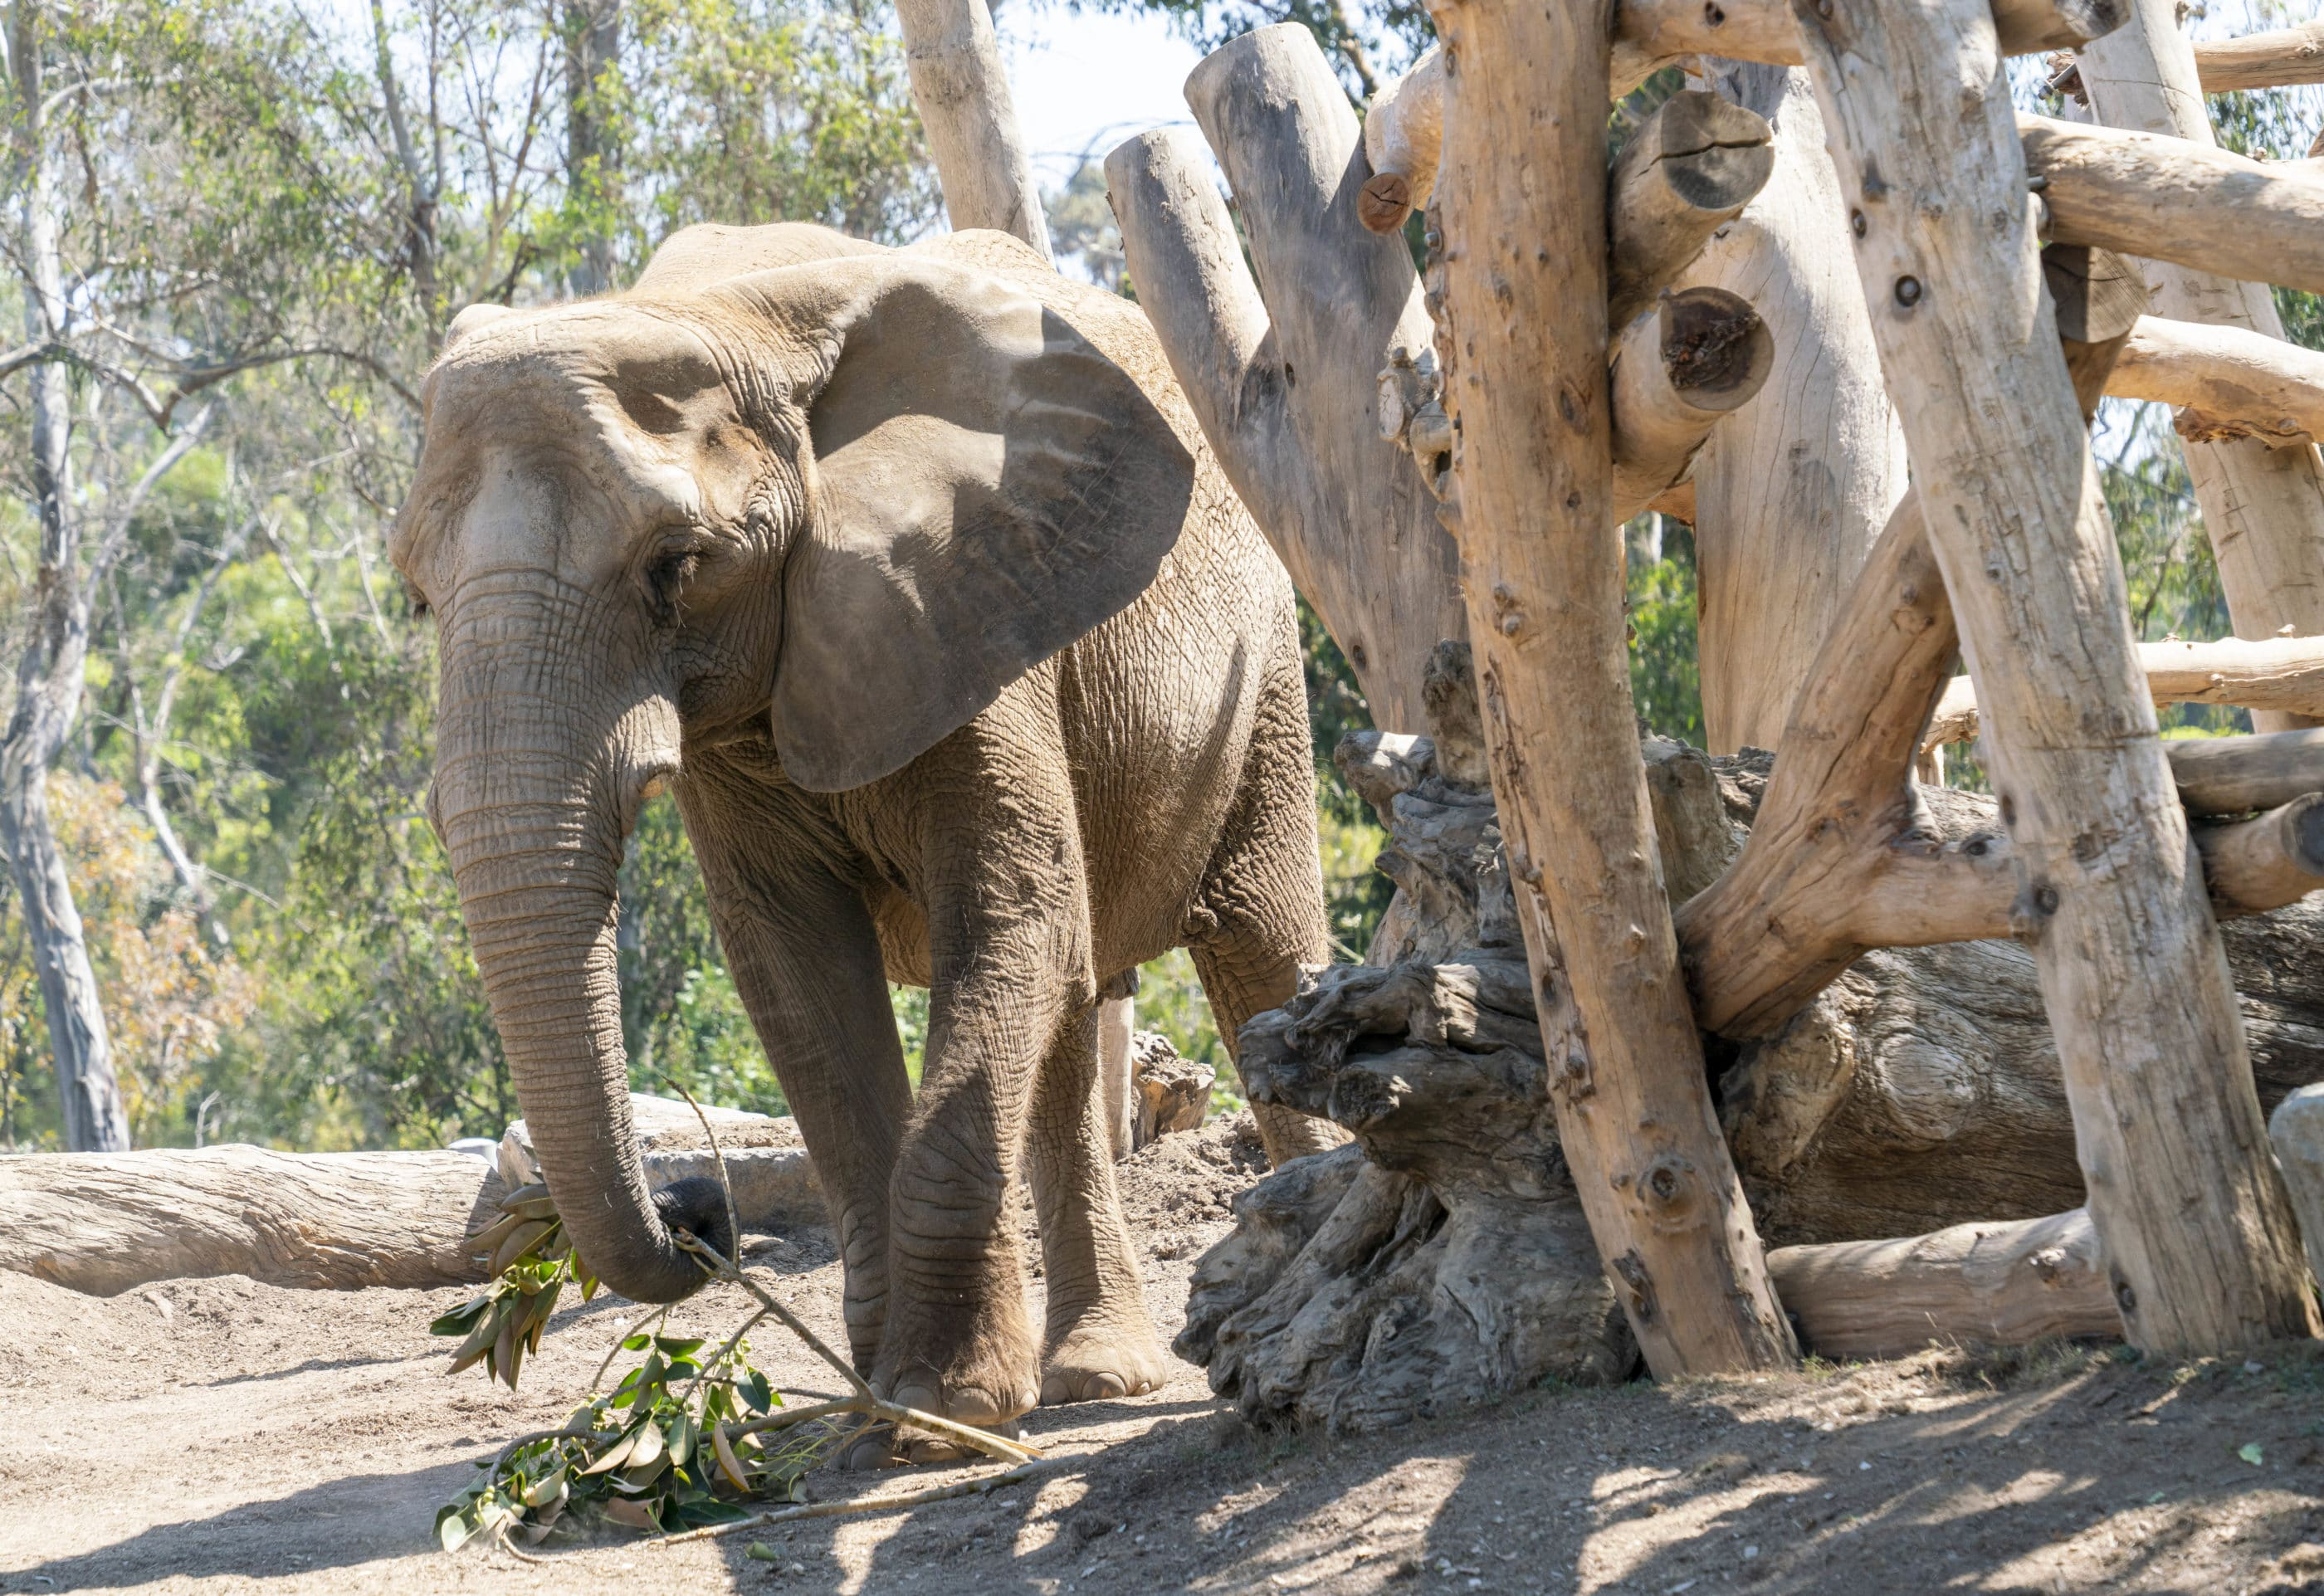 An elephant inside Elephant Odyssey at San Diego Zoo holds a tree branch in its trunk.